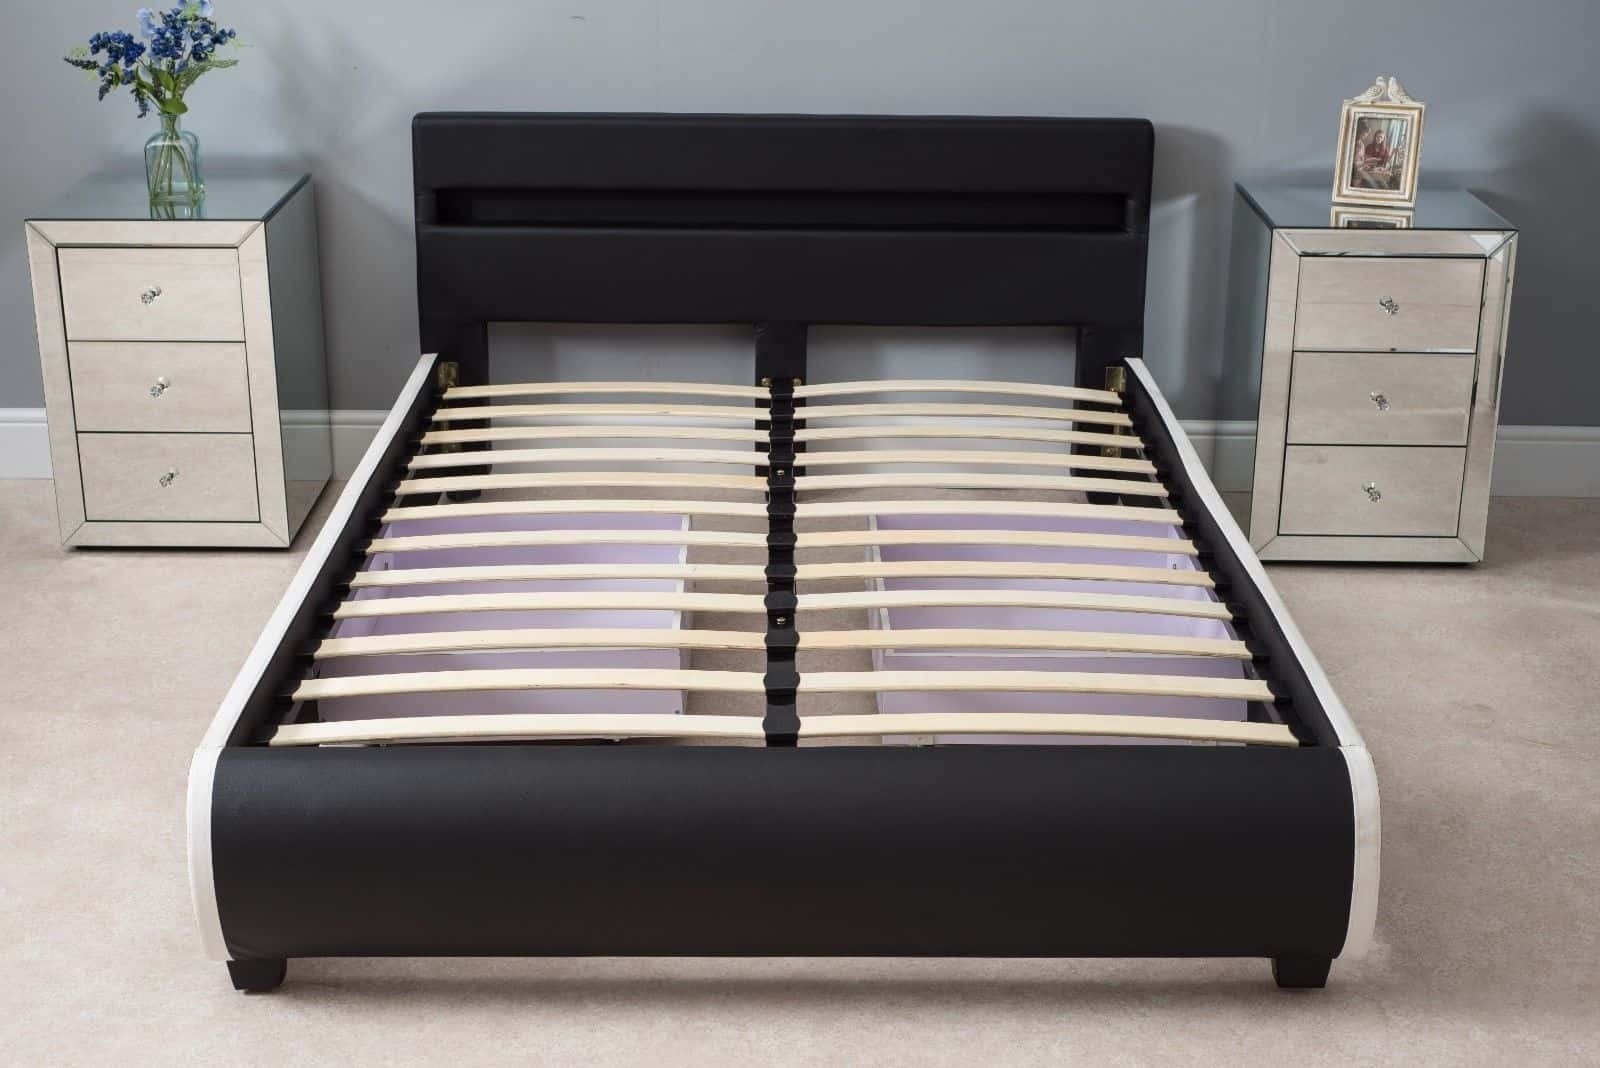 4ft6 Bed Frame Led Headboard 4ft6 Double Size Bed With Mattress Dreams Outdoors